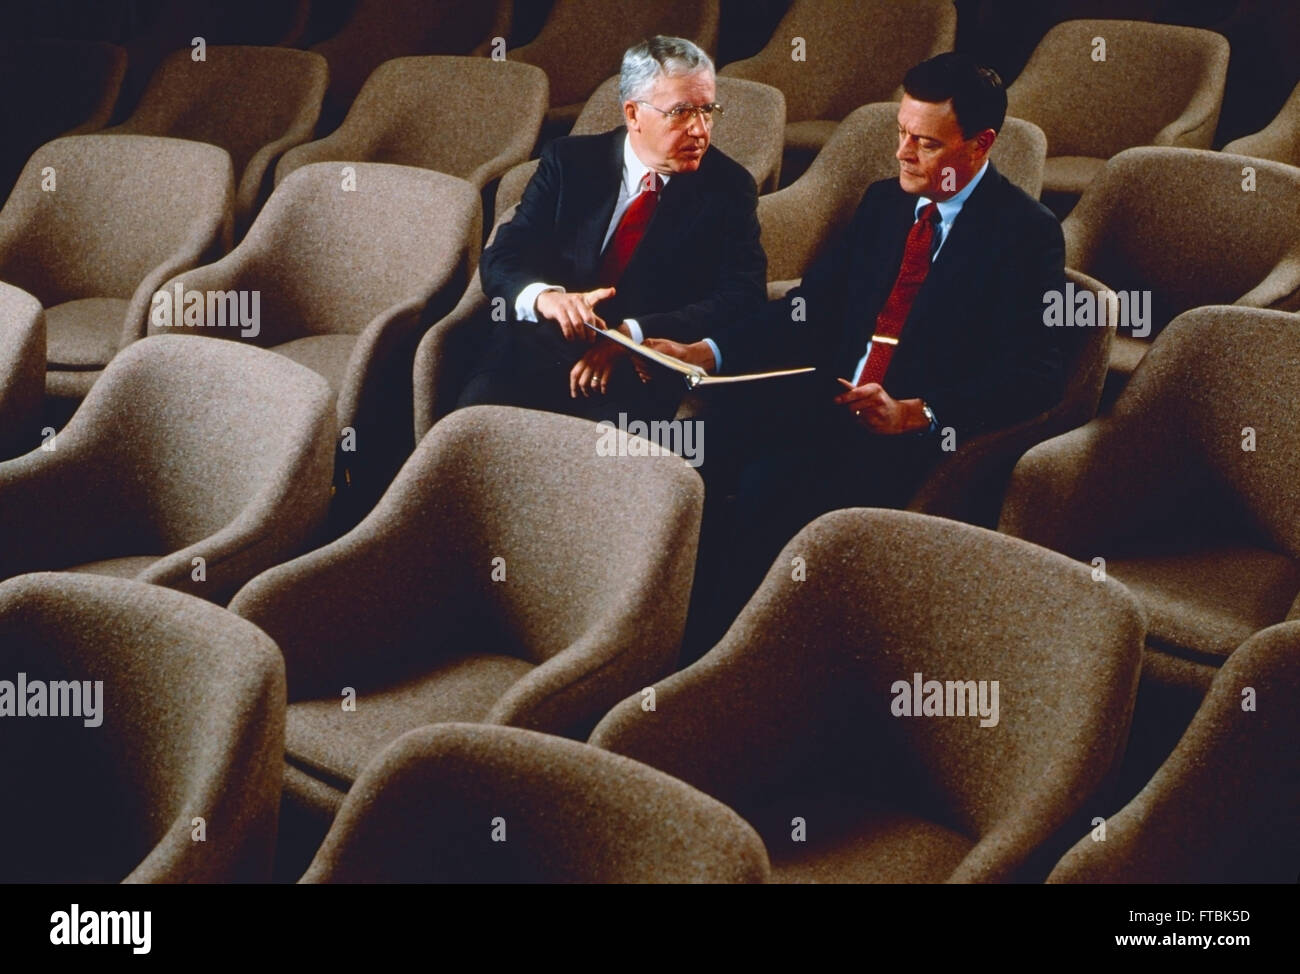 Two corporate business leaders seated in large conference room - Stock Image